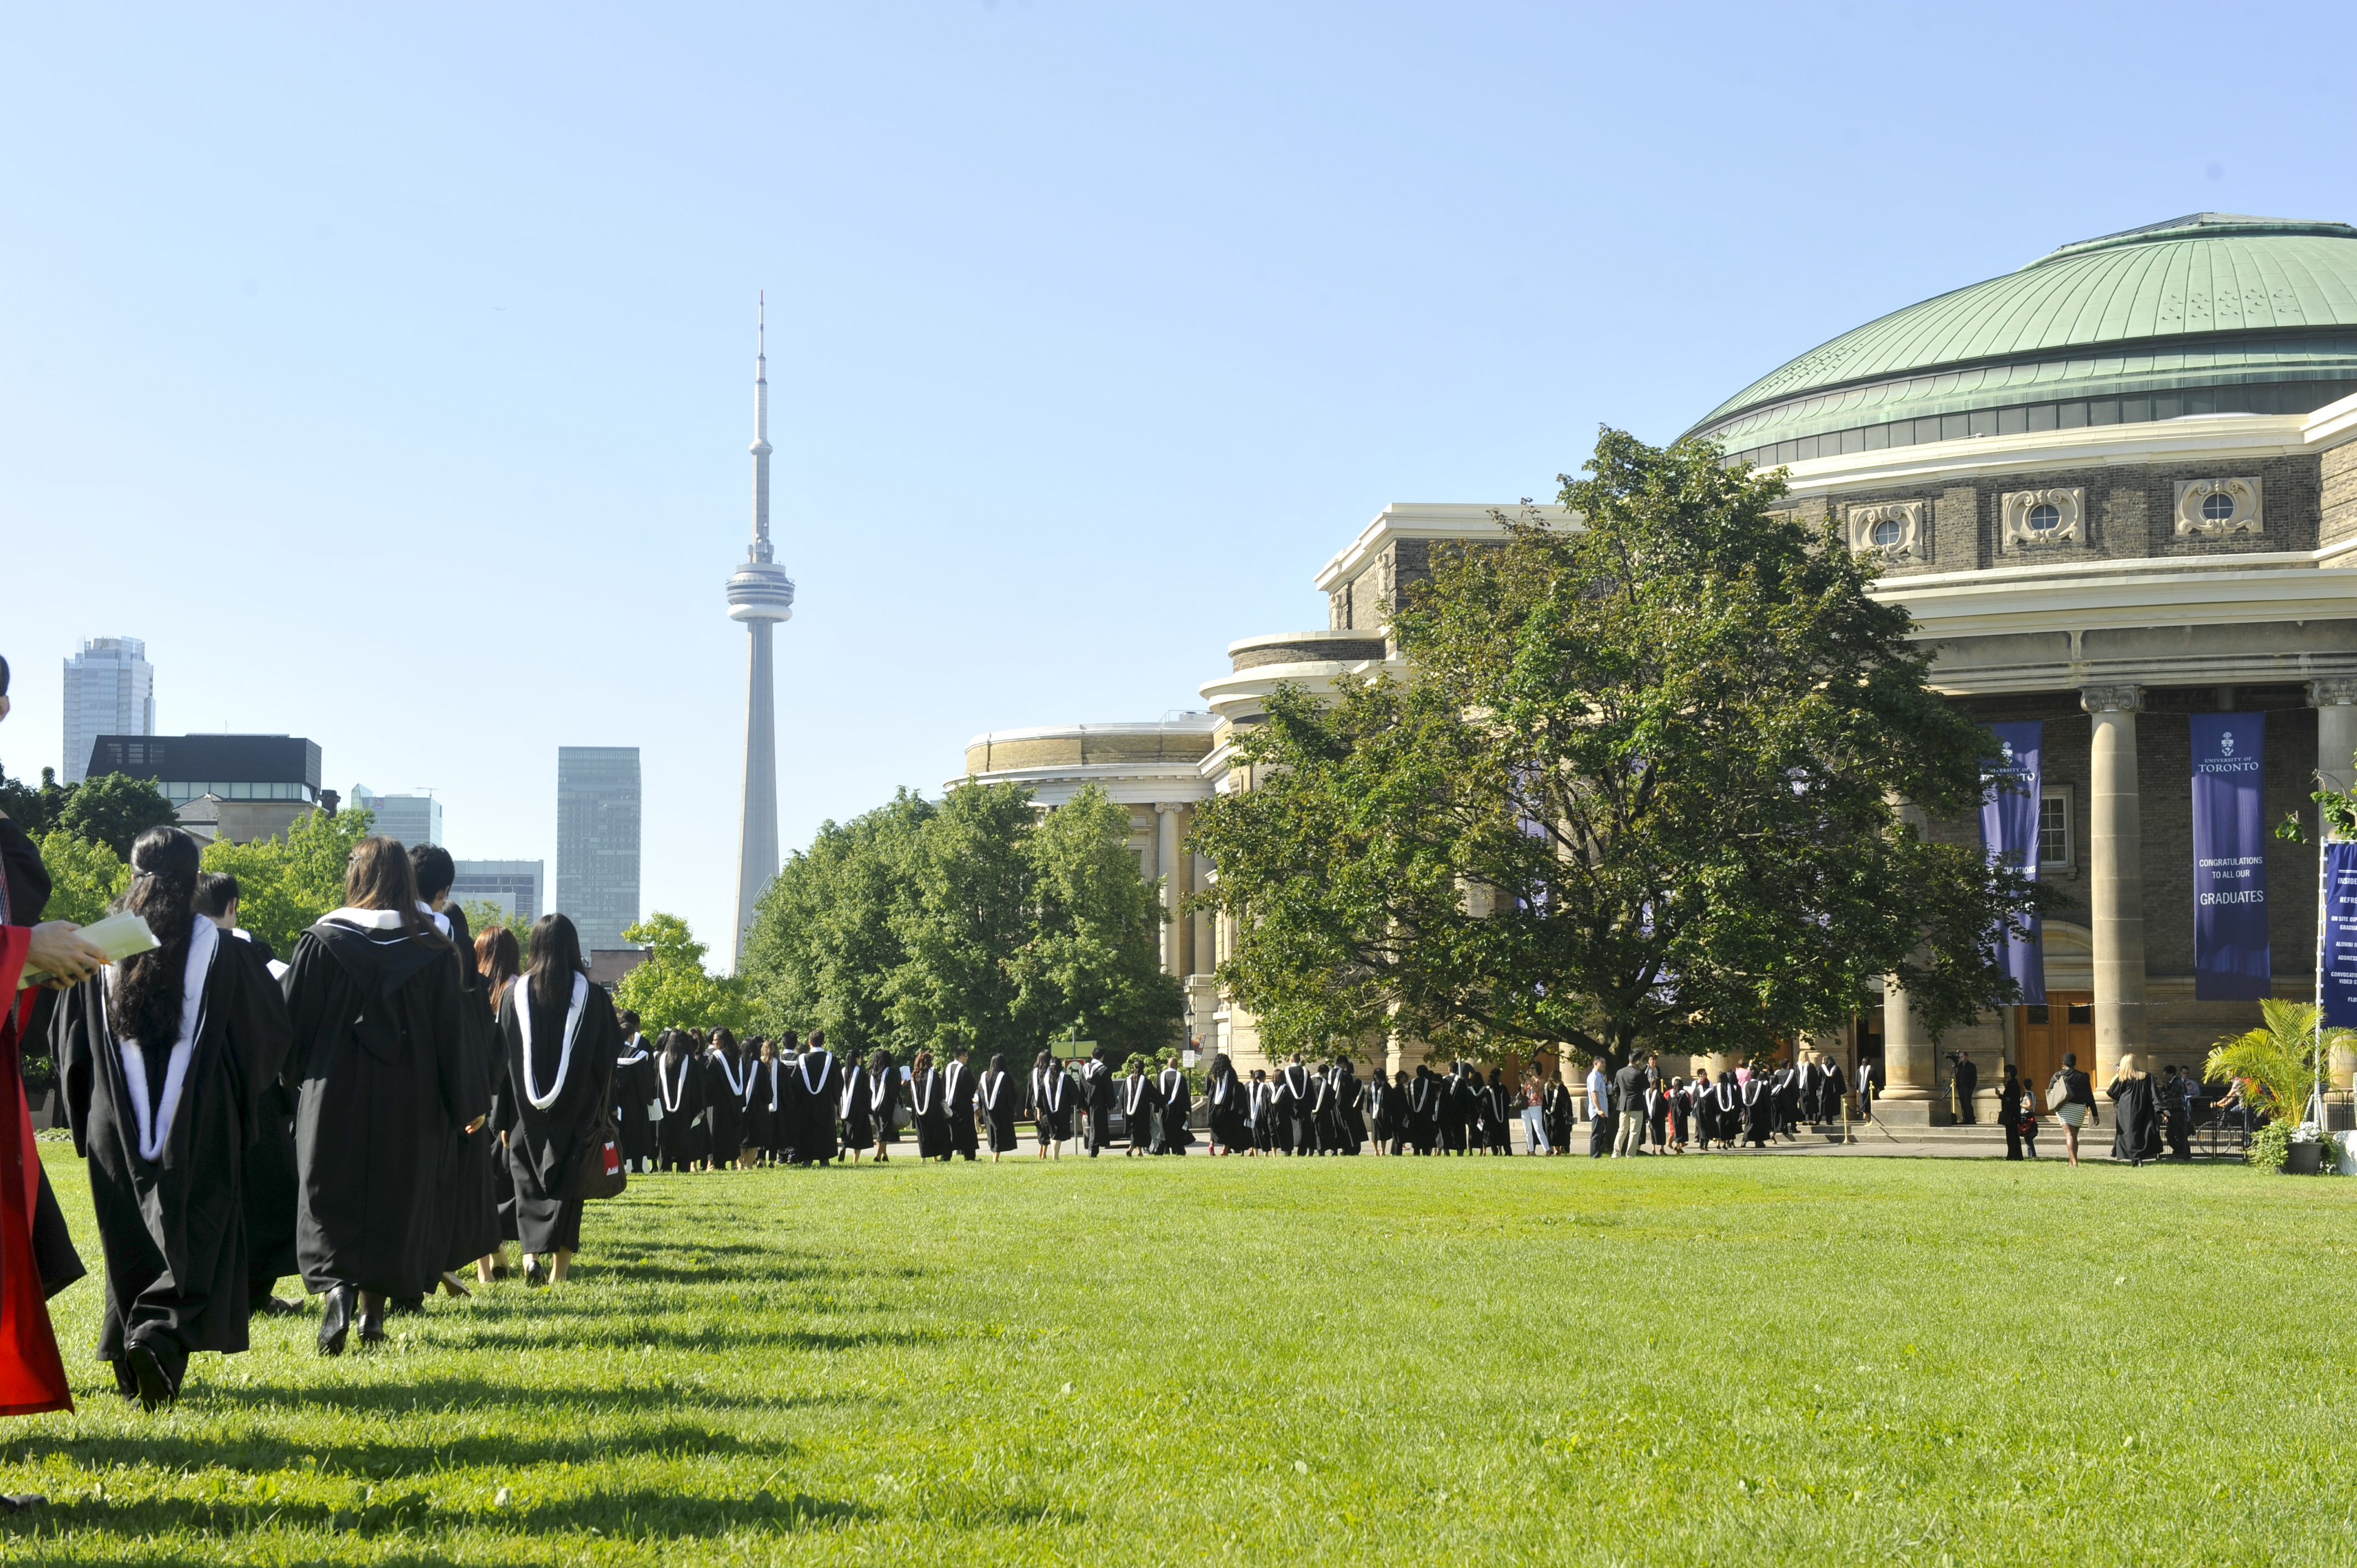 This is a picture of UofT's convocation hall, with the CN tower in the background, and the King's Circle Field in view